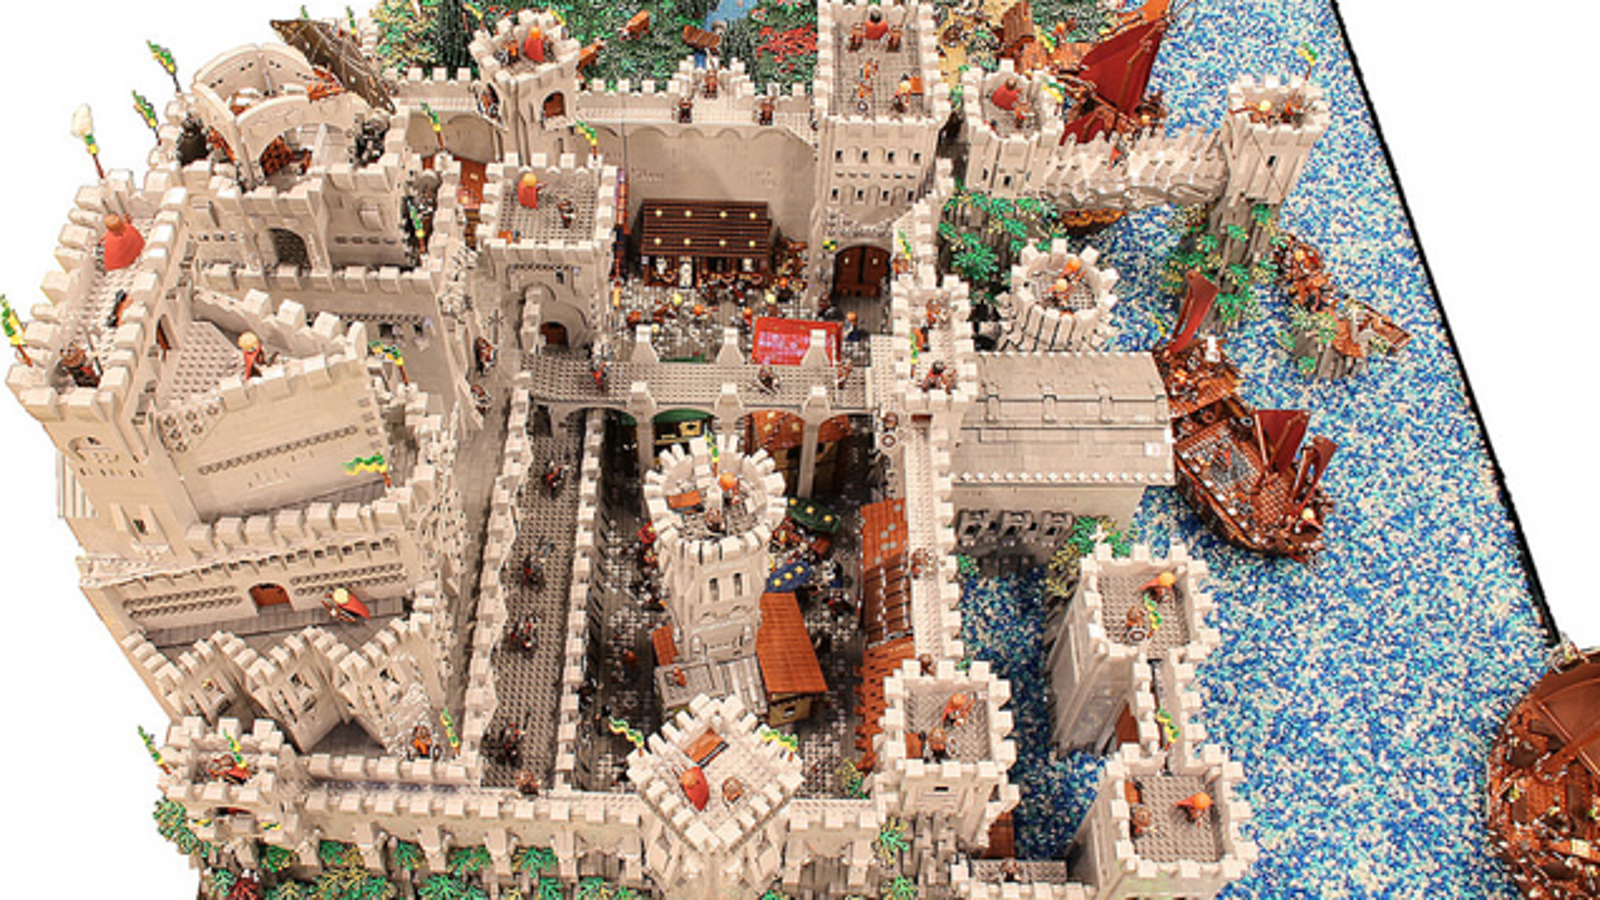 Thats How You Build A Giant Lego Castle